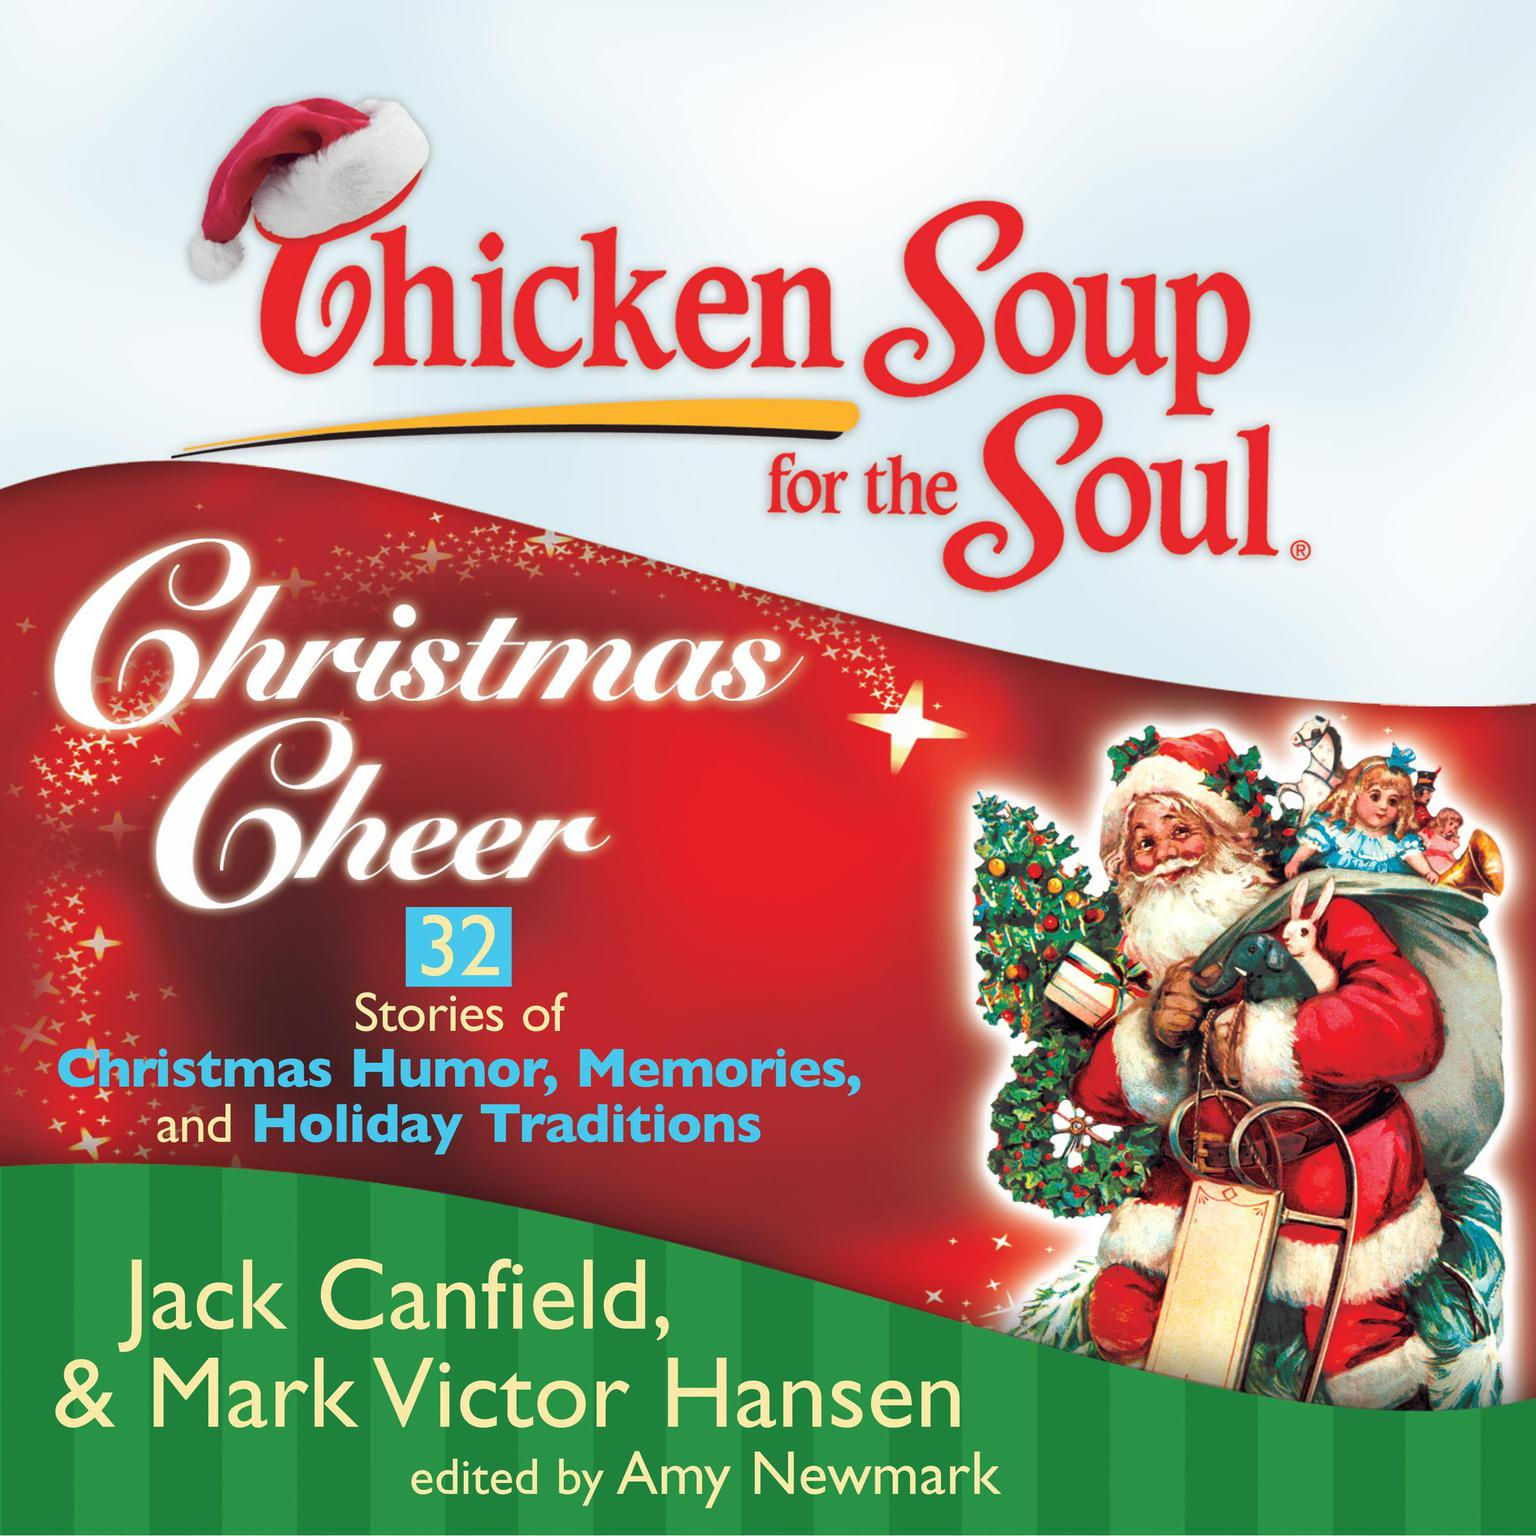 Printable Chicken Soup for the Soul: Christmas Cheer - 32 Stories of Christmas Humor, Memories, and Holiday Traditions Audiobook Cover Art